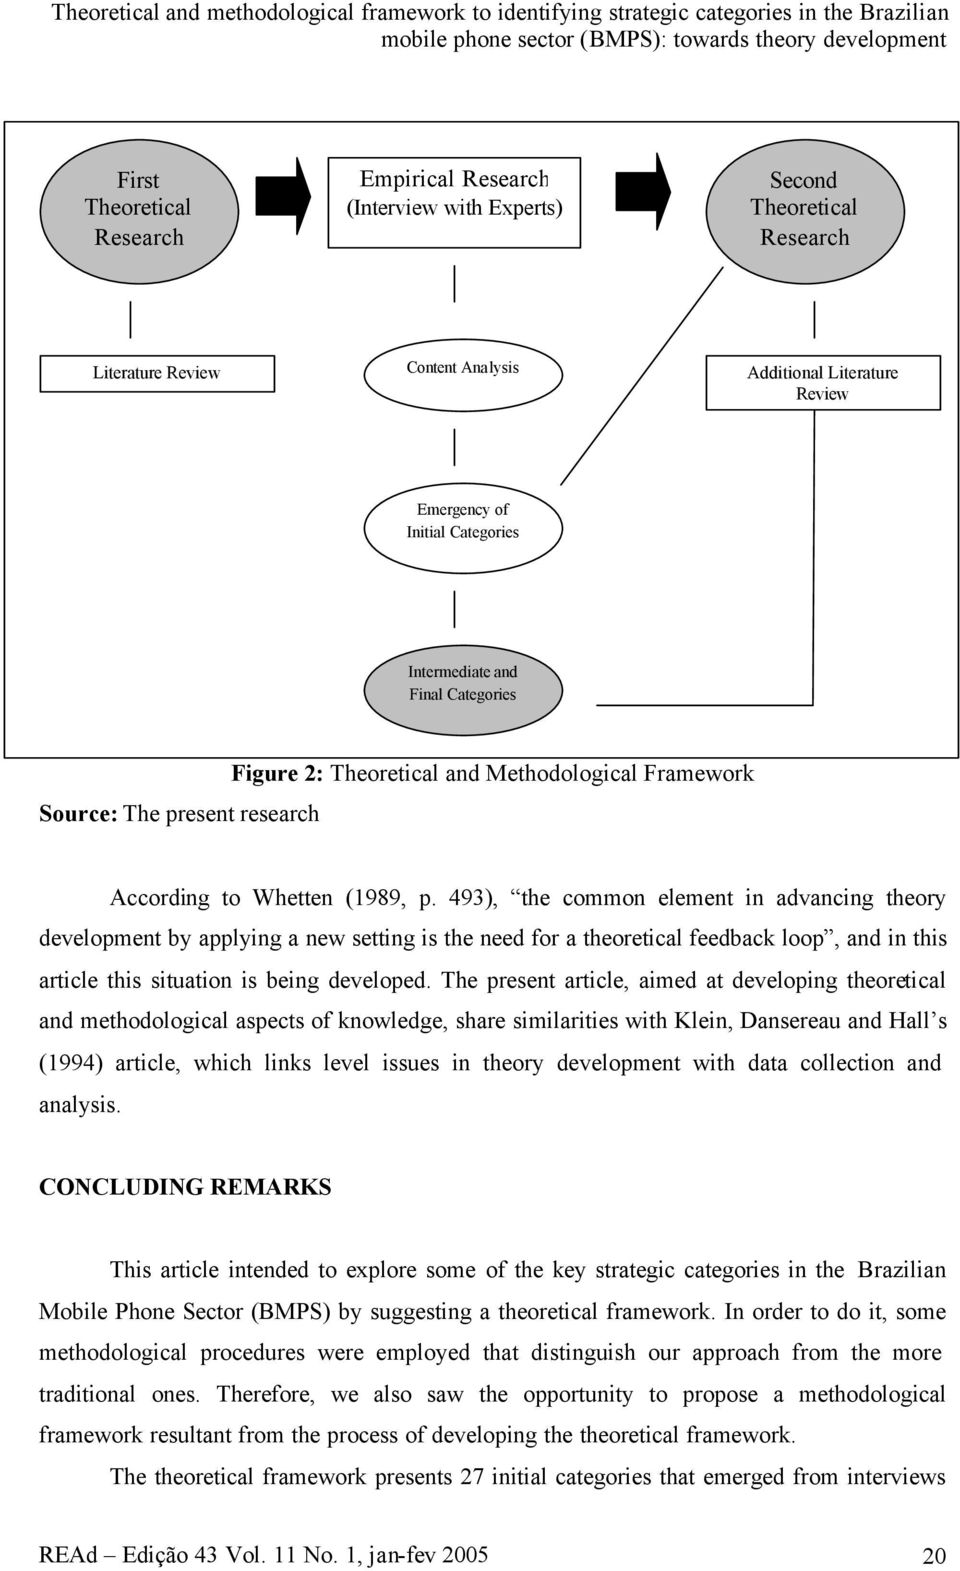 present research Figure 2: Theoretical and Methodological Framework According to Whetten (1989, p.